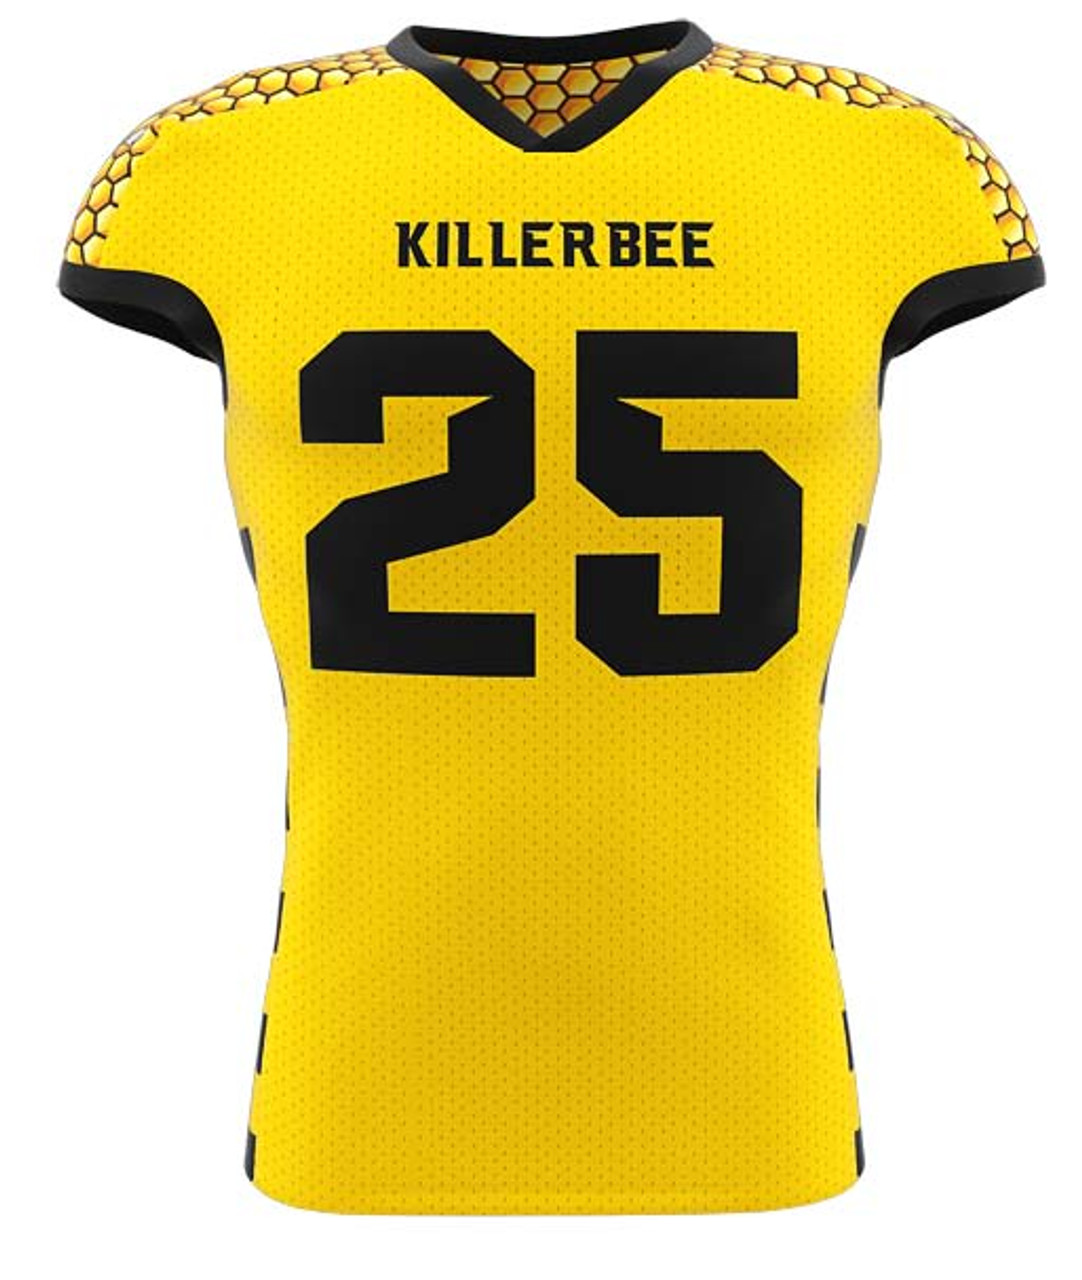 AthElite Mens Dual Threat Reversible Football Jersey